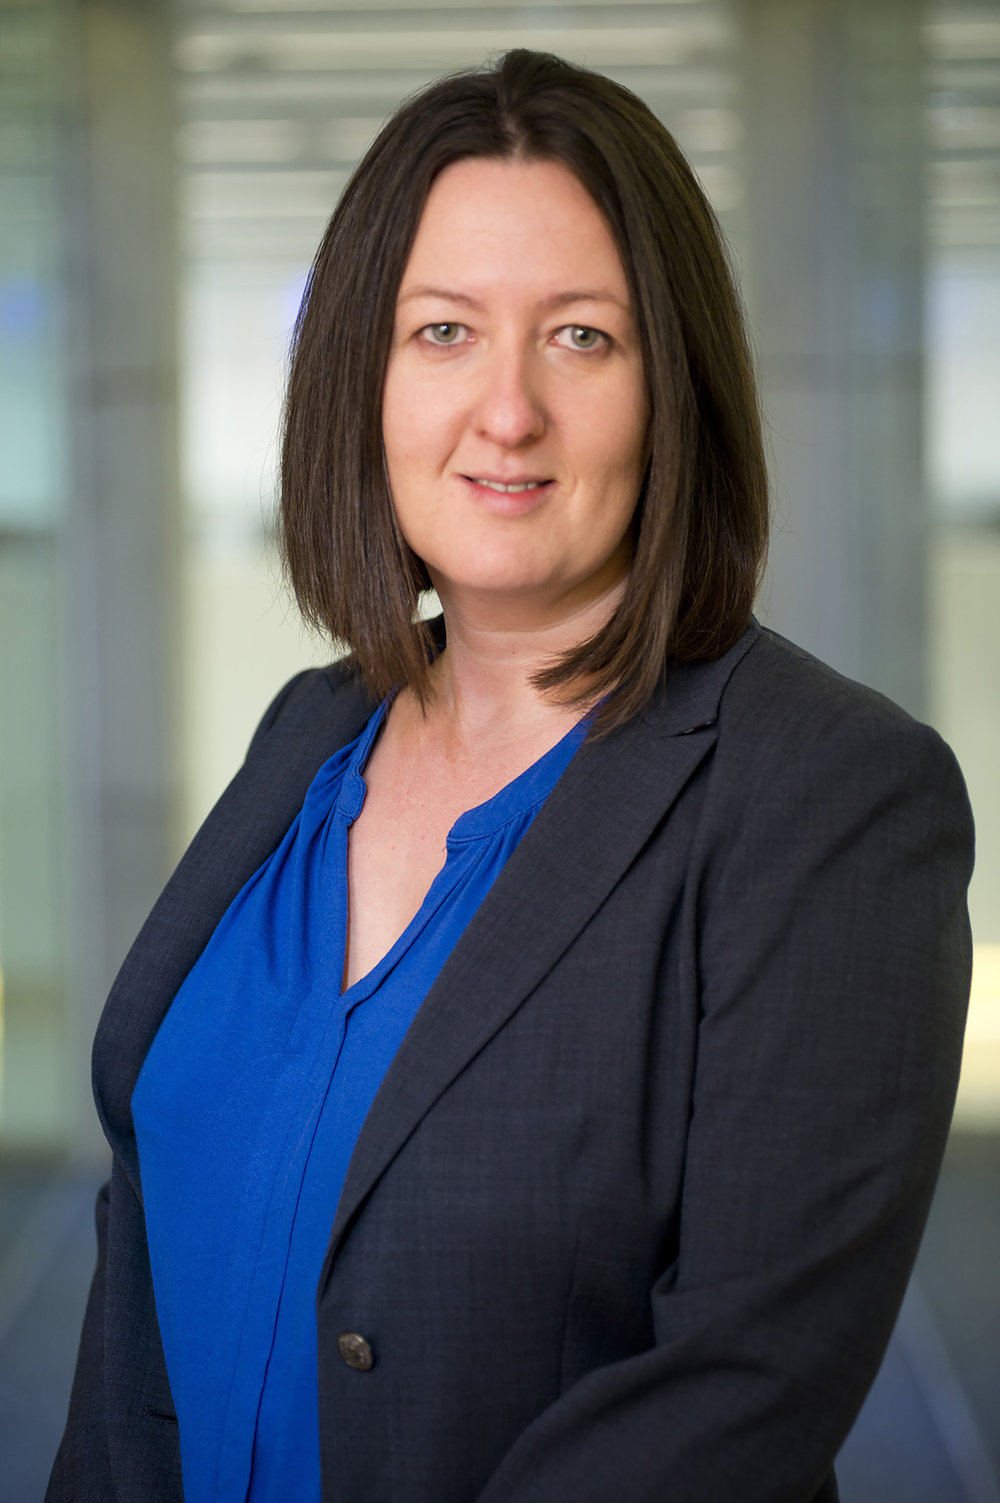 Emma Allsopp Finance Director